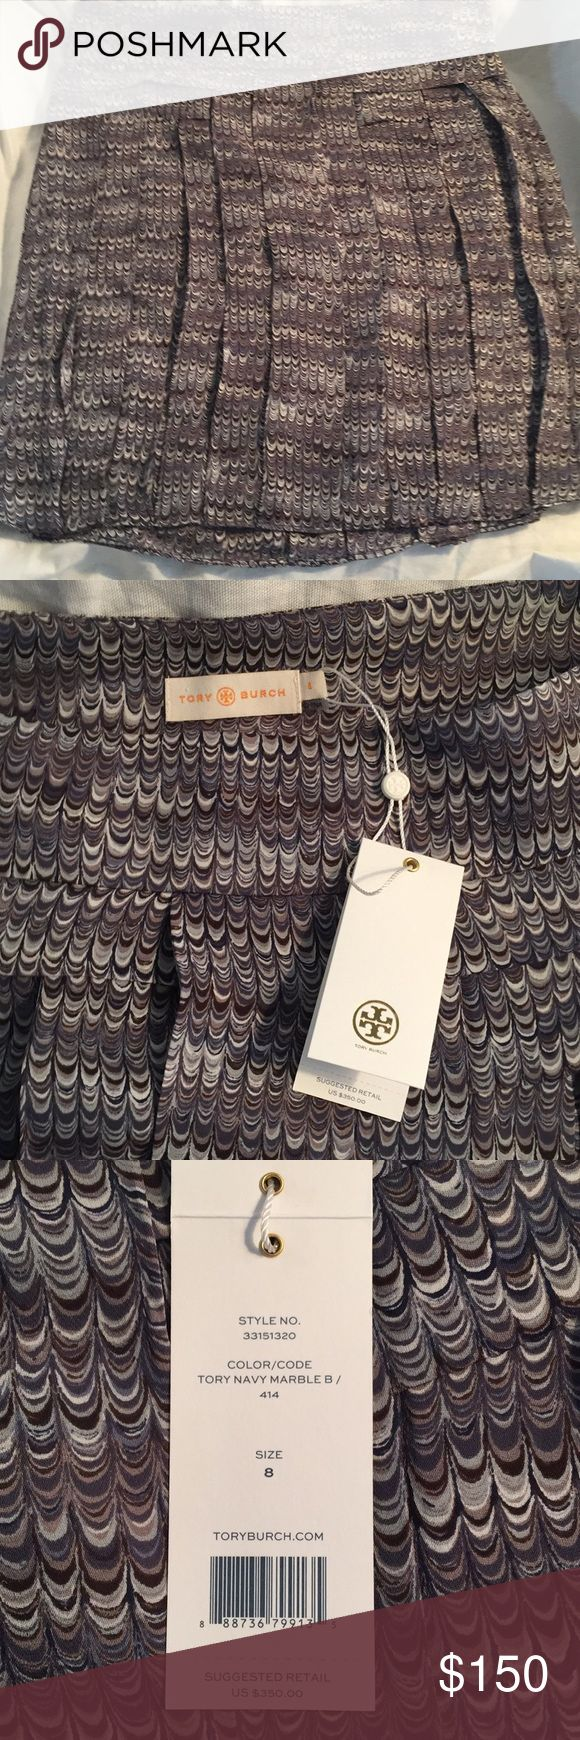 "Tory Burch silk skirt Brand new, never worn silk pleated skirt. Pleats are still tacked. Length is 21"". Tory Burch Skirts Mini"